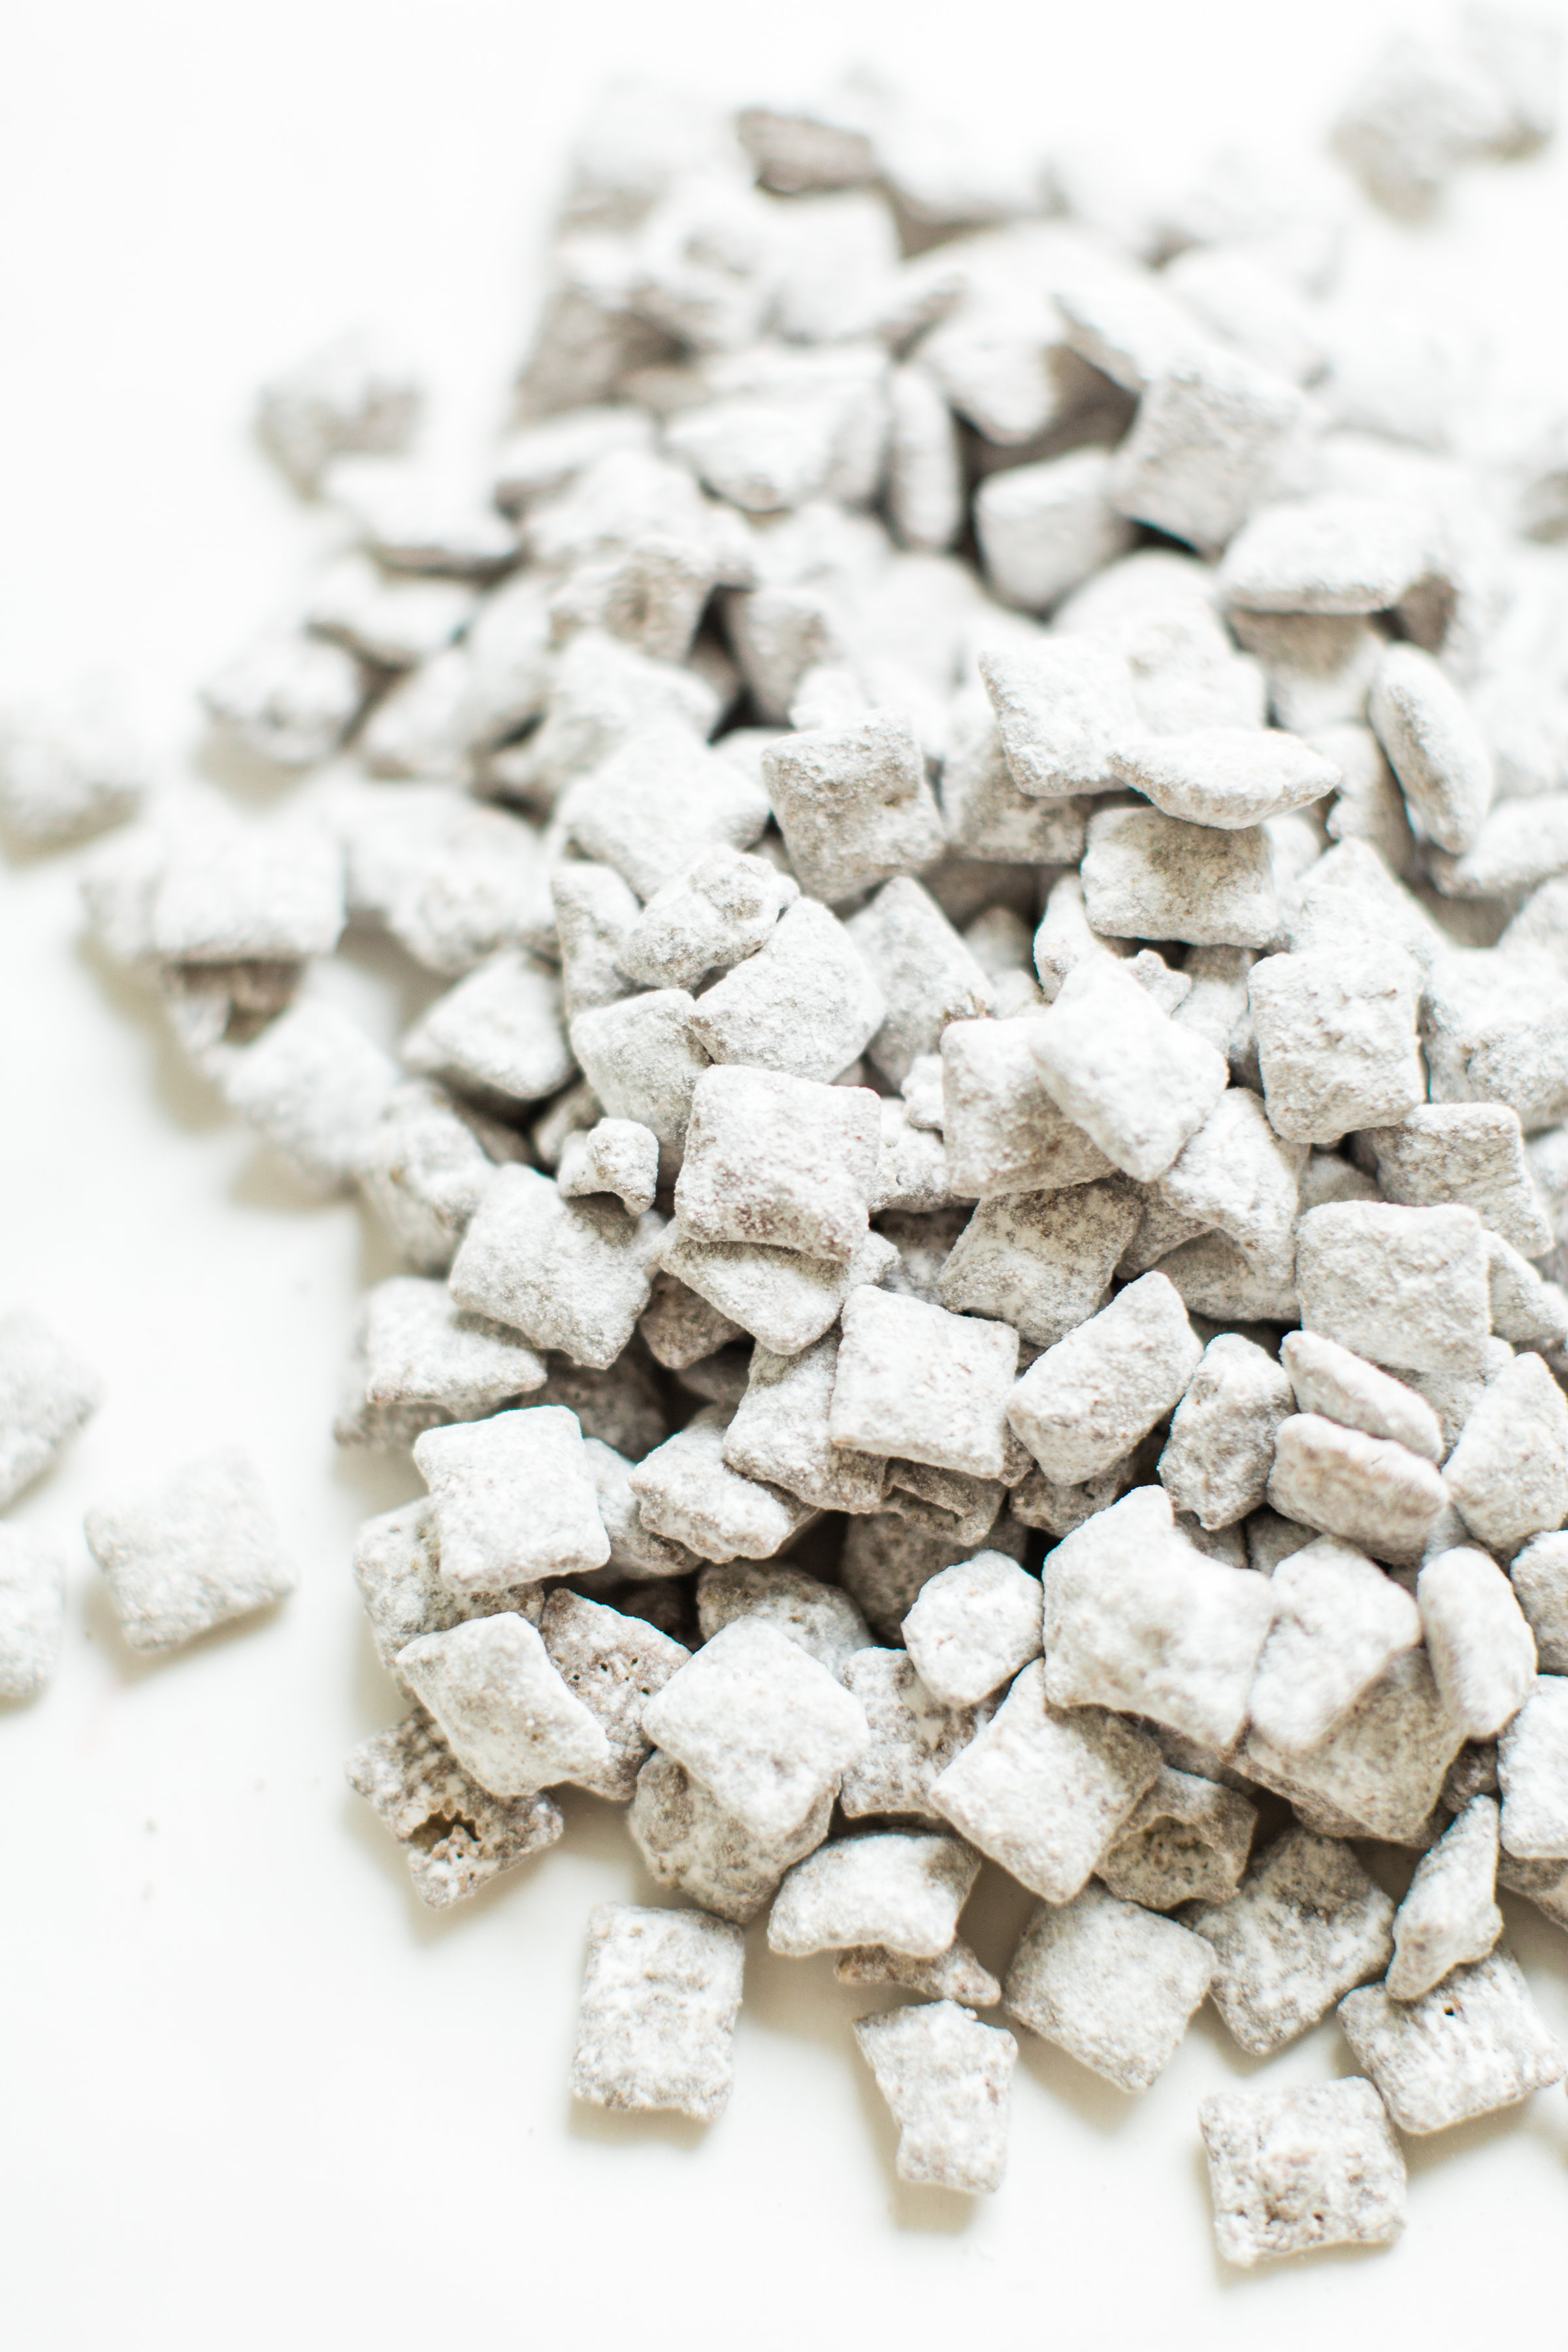 Positively addictive classic Puppy Chow Muddy Buddies - comes together in minutes, is no-bake, and can be made up in big batches - perfect for gifting! Click through for the recipe. #muddybuddies #puppychow #holidayrecipe #dairyfree #vegan #vegandessert | glitterinc.com | @glitterinc